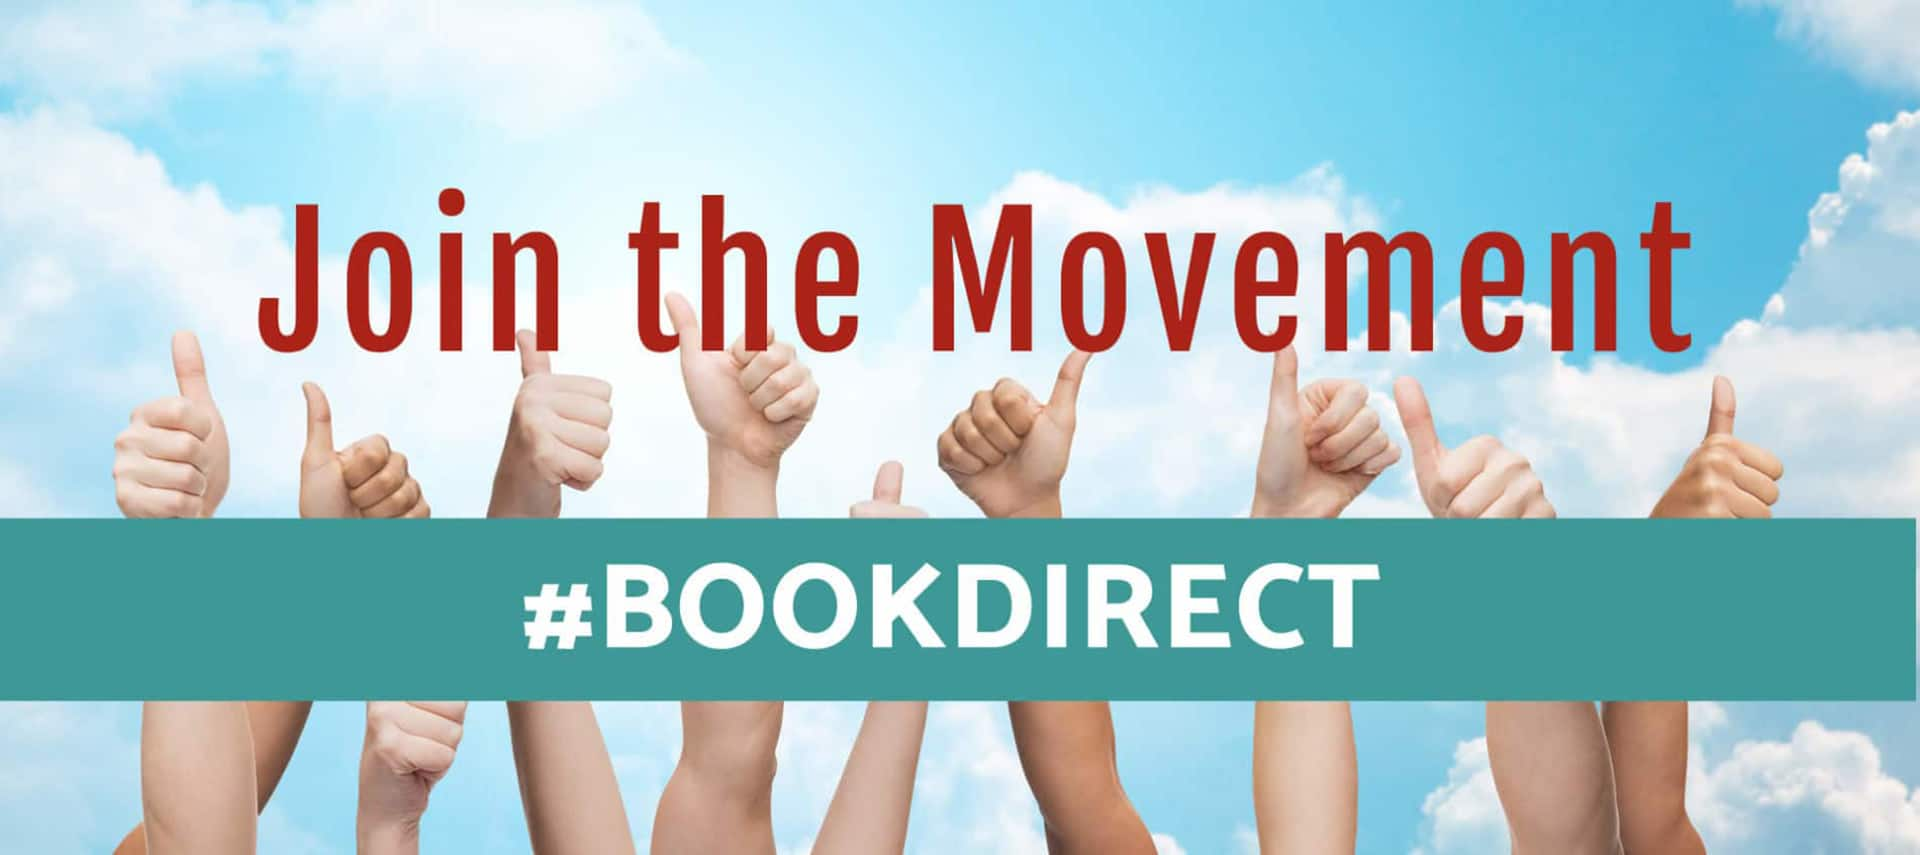 Thumbs up hands in a blue skyt with clouds, words say Join the Movement BookDirect